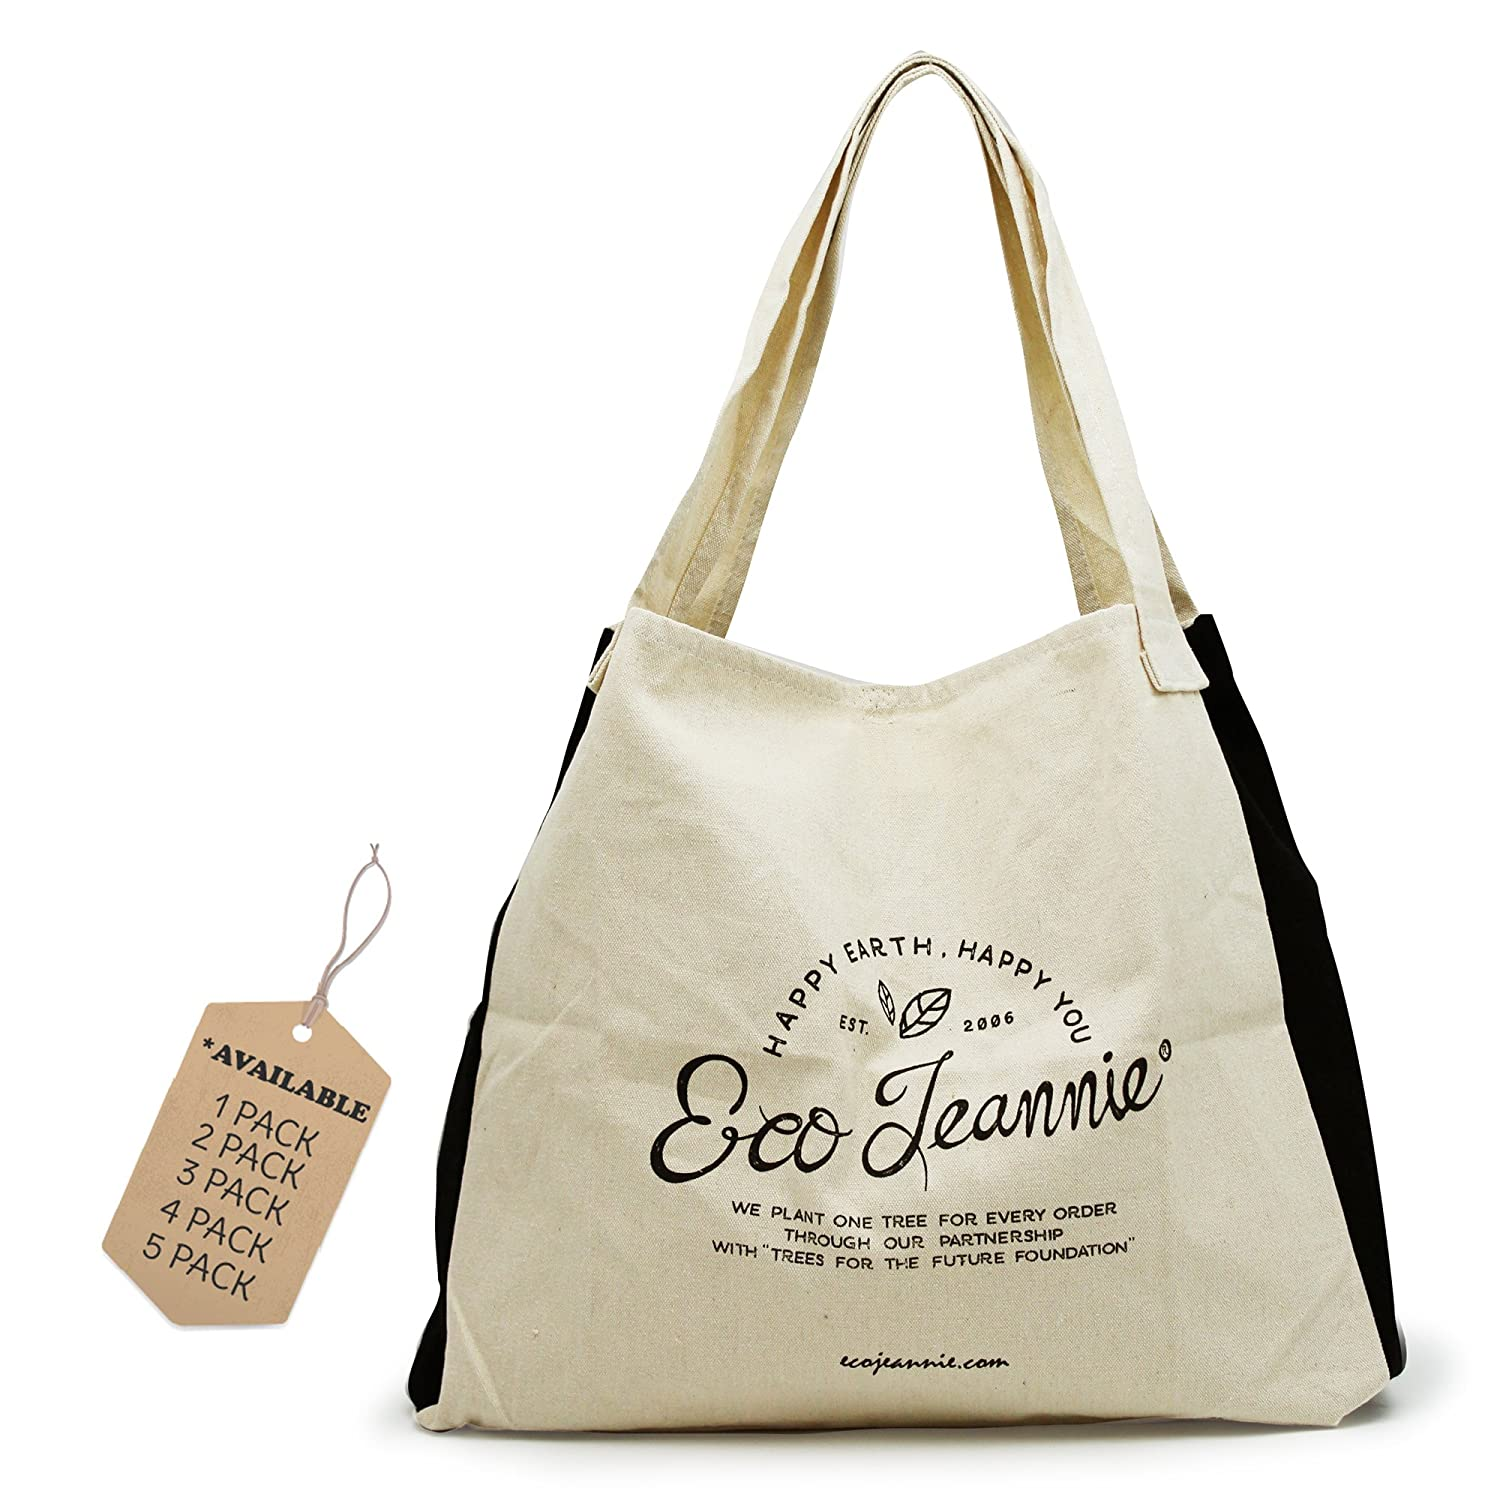 EcoJeannie (1 Bag) 100% Cotton Canvas Reusable Tote Bag w/ Inner Pocket, Gusset and Closure Strips, Multi Use bag, Shoulder Bag, Travel Tote, Picnic Bag, 24-7 Bag, School Bag Arrow Industries Inc. LC0001